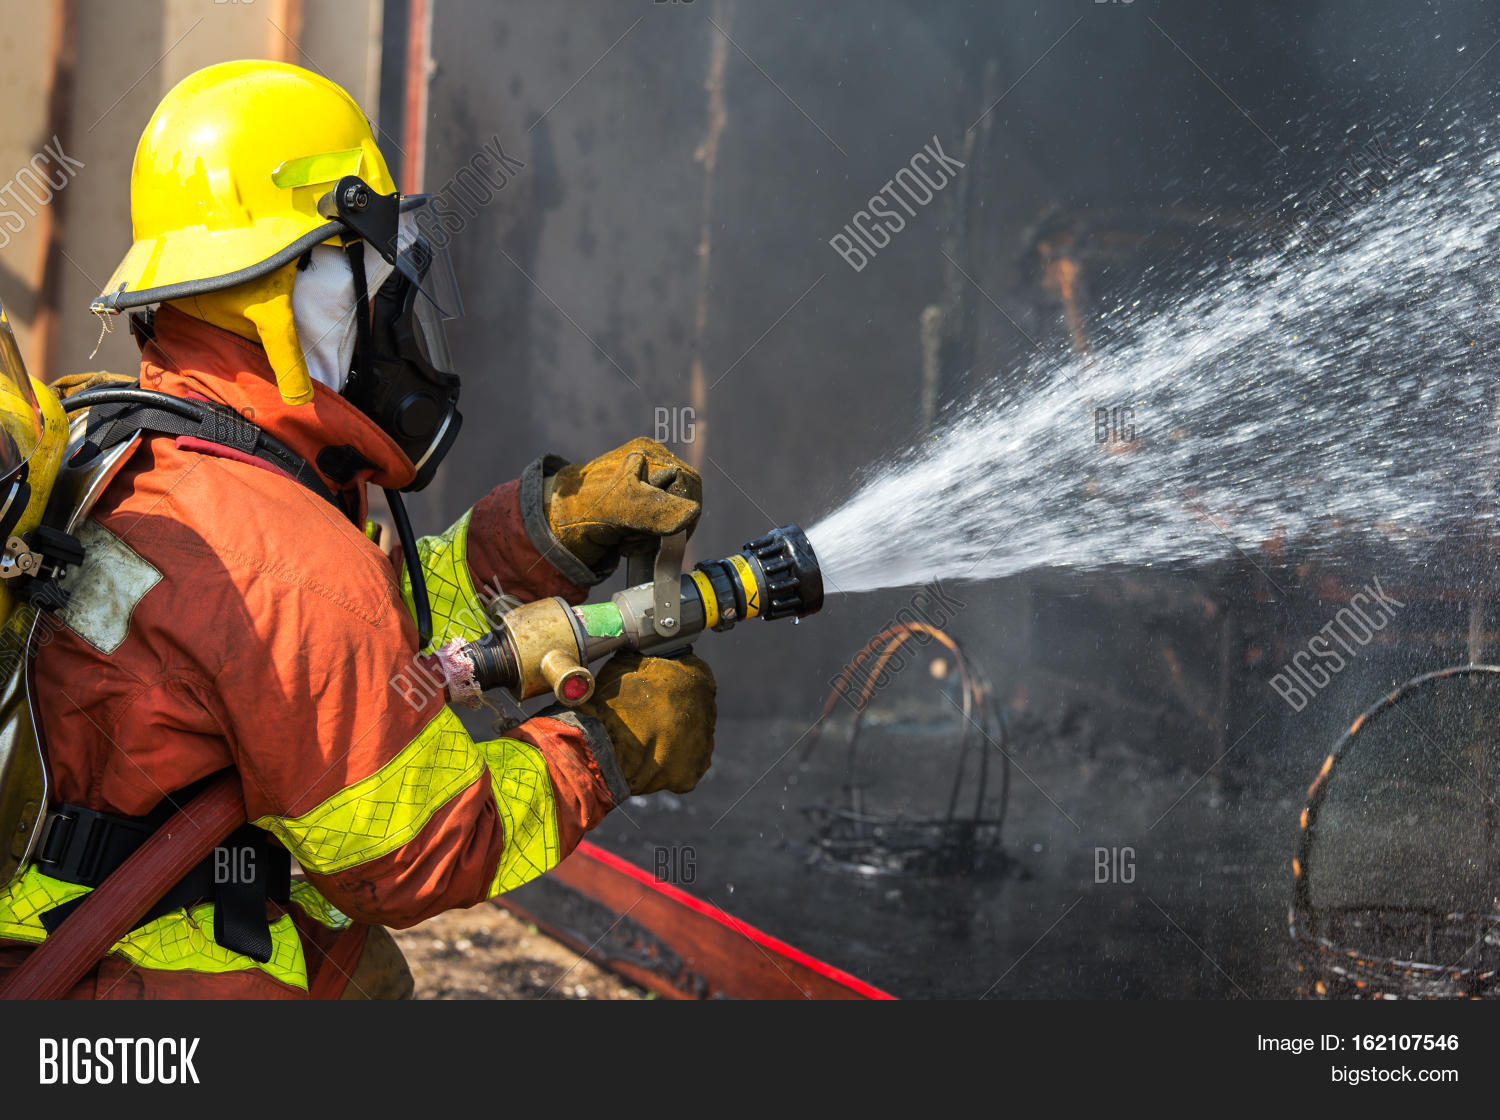 Firefighter Hold And Adjust Nozzle And Fire Hose Spraying